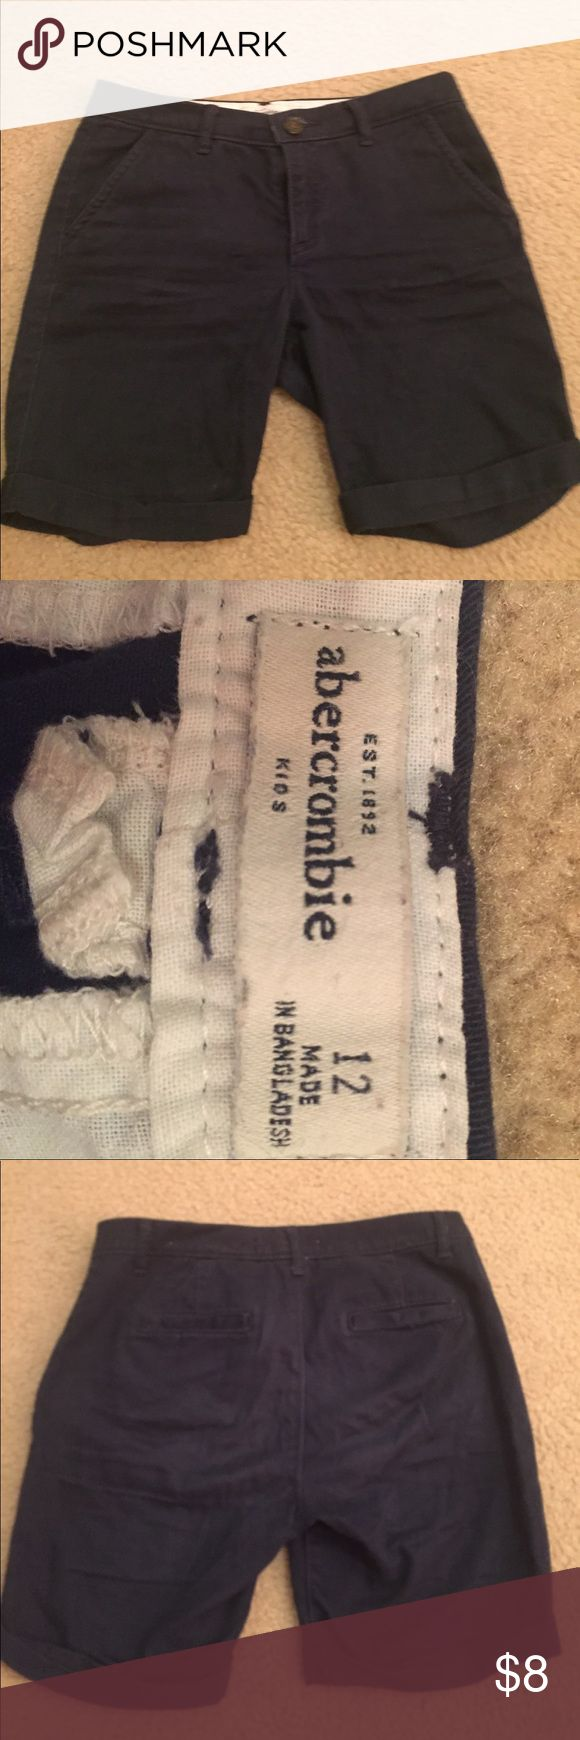 Girls Abercrombie kids navy blue uniform bottoms I have 4 Abercrombie kids navy blue uniform bottoms that are $8 each or $25 for all 4. They are all a size  girls size 12. In good condition!! Abercombie Kids Bottoms